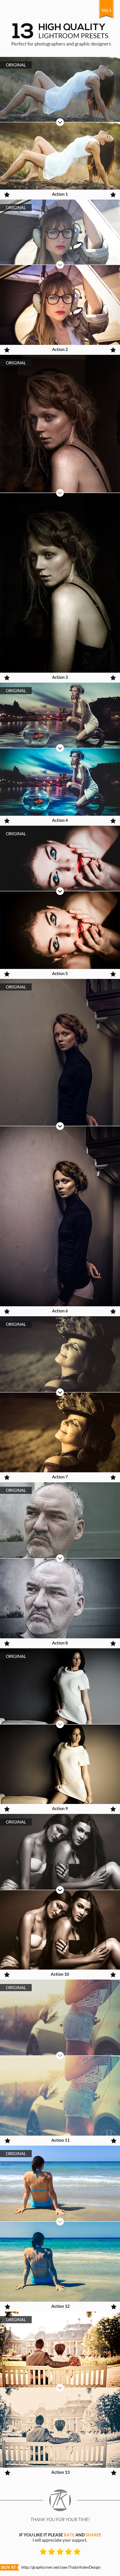 13 High Quality Lightroom Presets - Portrait Lightroom Presets